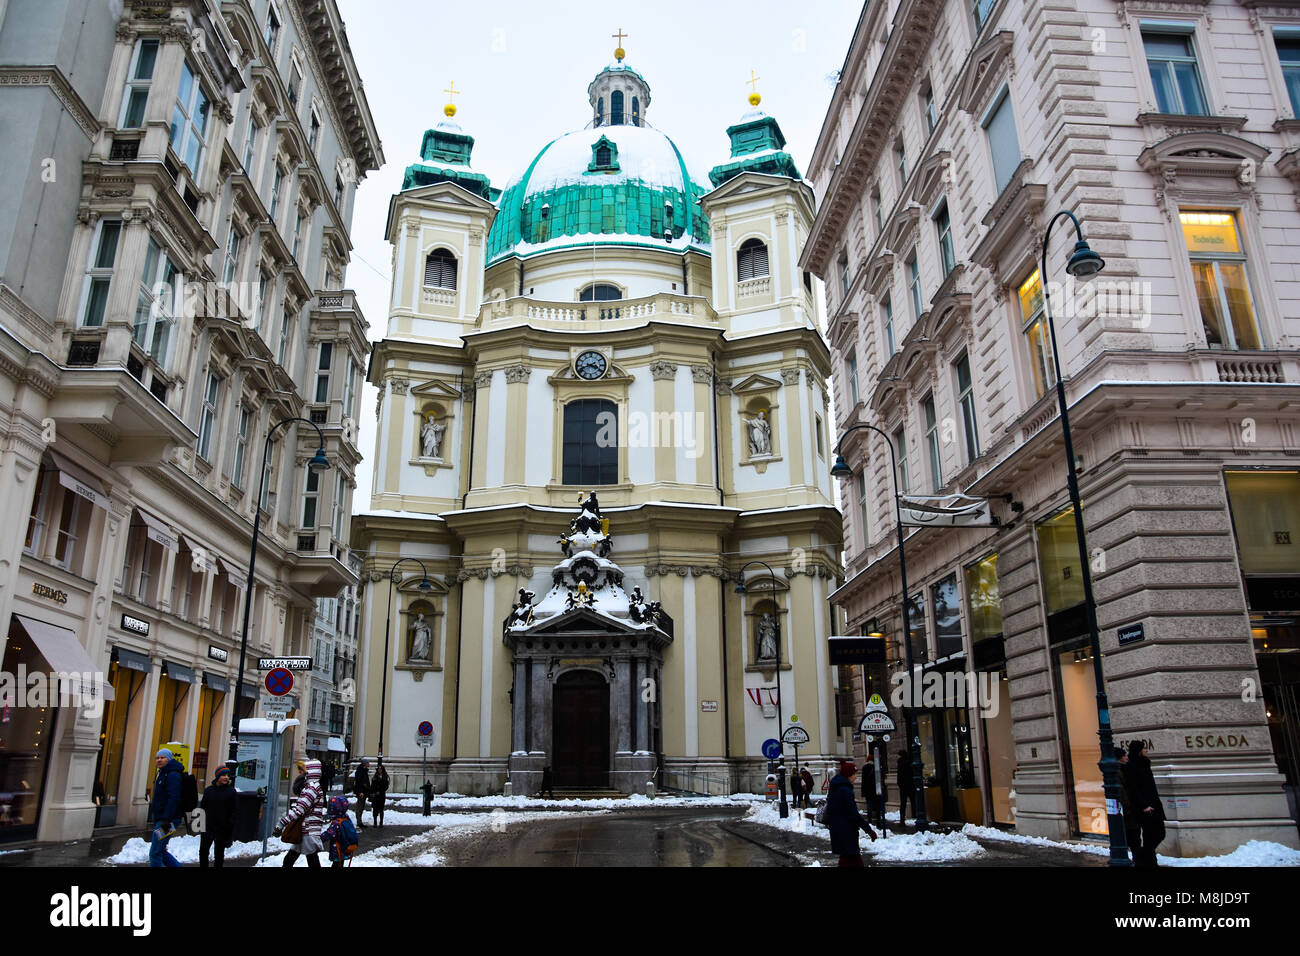 Vienna, Austria. February 1, 2017. View of Peterskirche (St. Peter's Church), a Baroque Roman Catholic parish - Stock Image